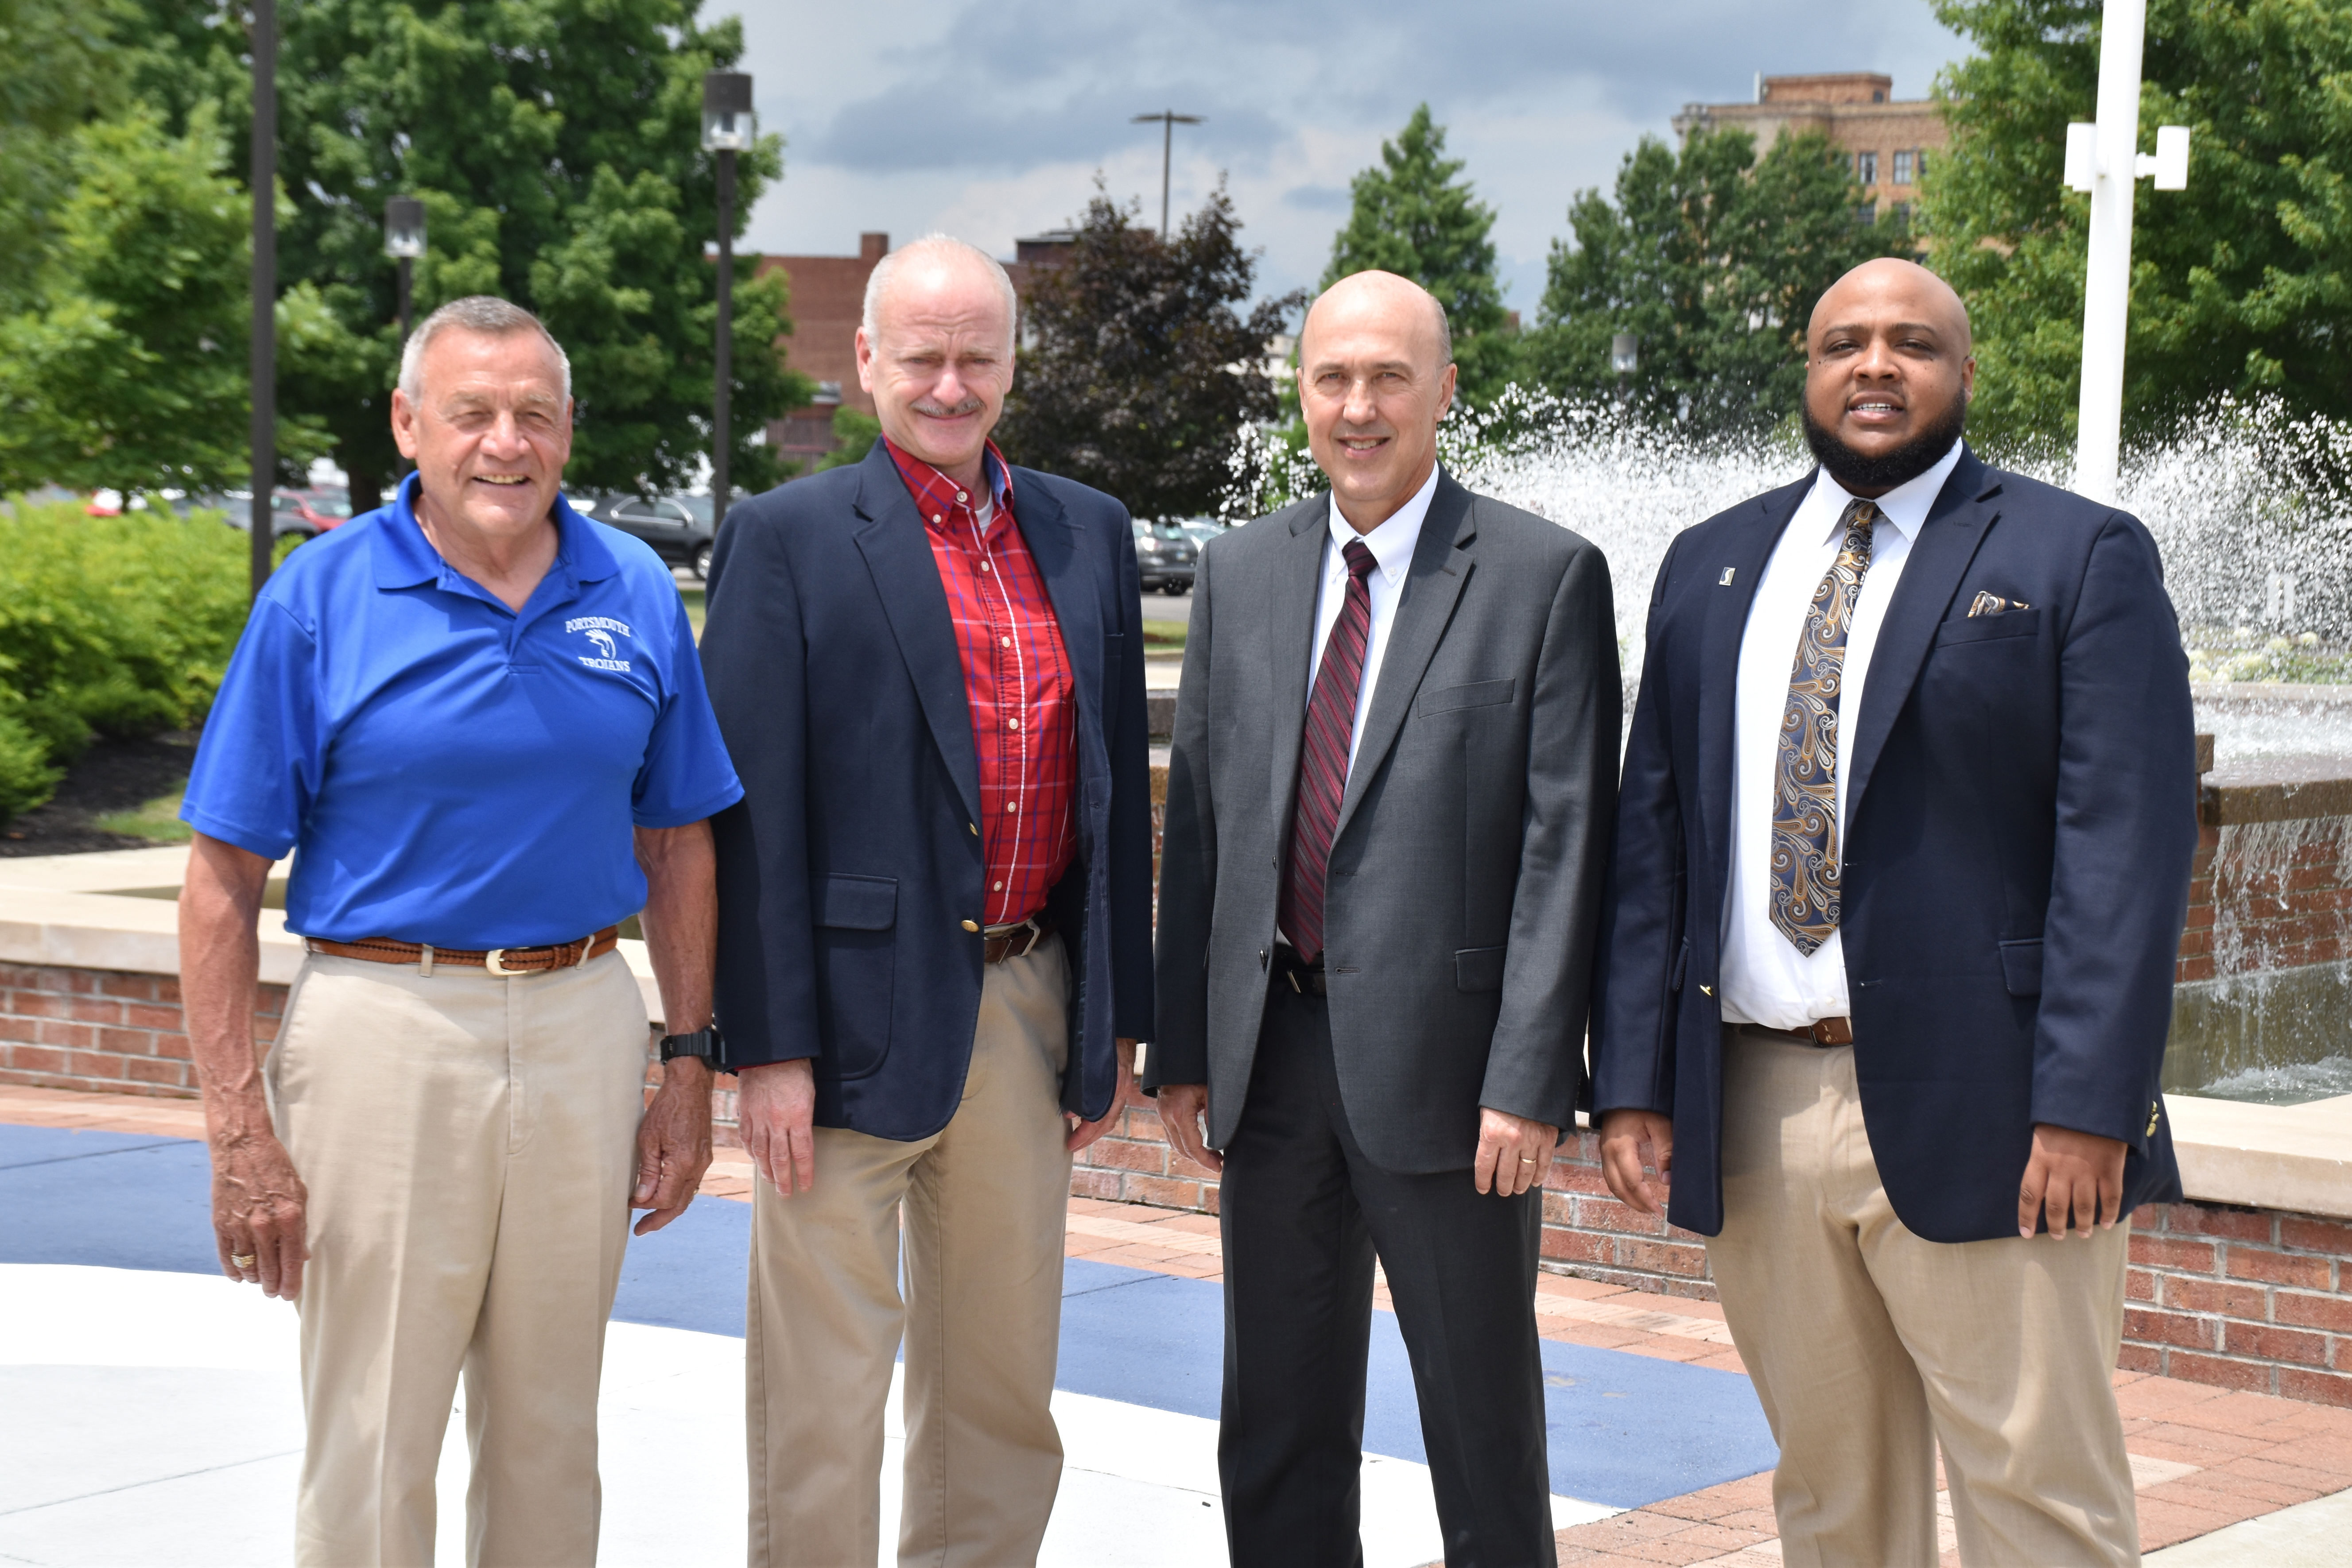 Four men representing leadership at Portsmouth High School and Shawnee